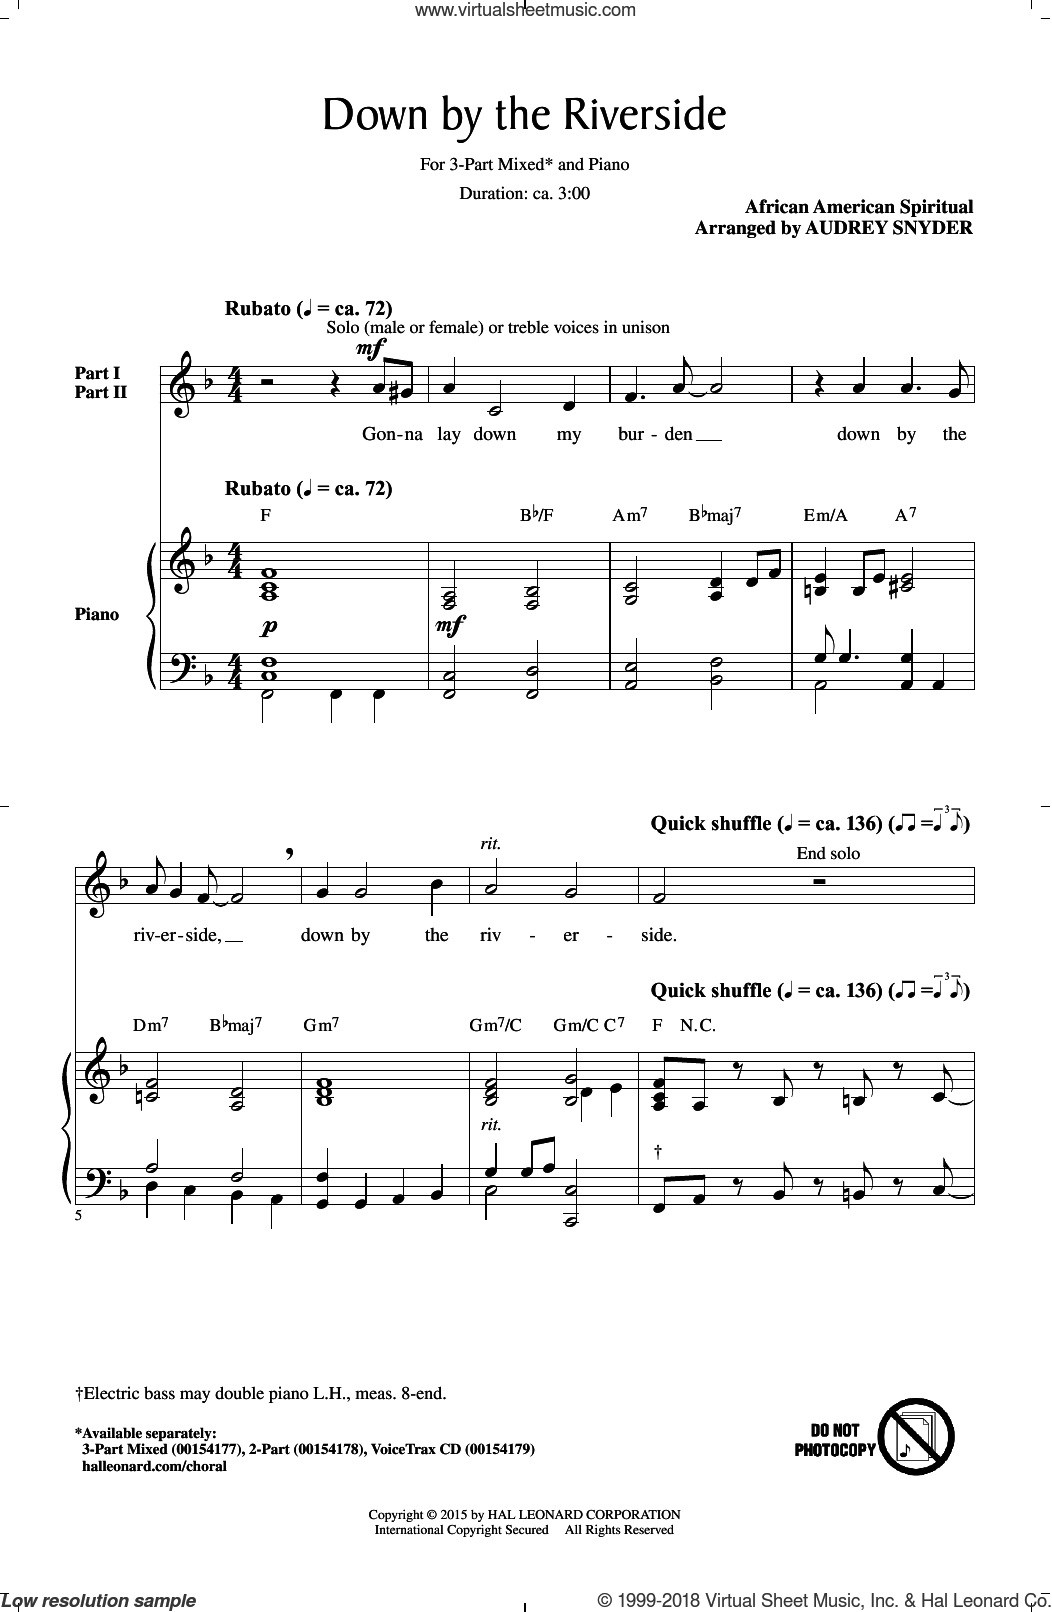 Down By The Riverside sheet music for choir (3-Part Mixed) by Audrey Snyder and Miscellaneous, intermediate skill level